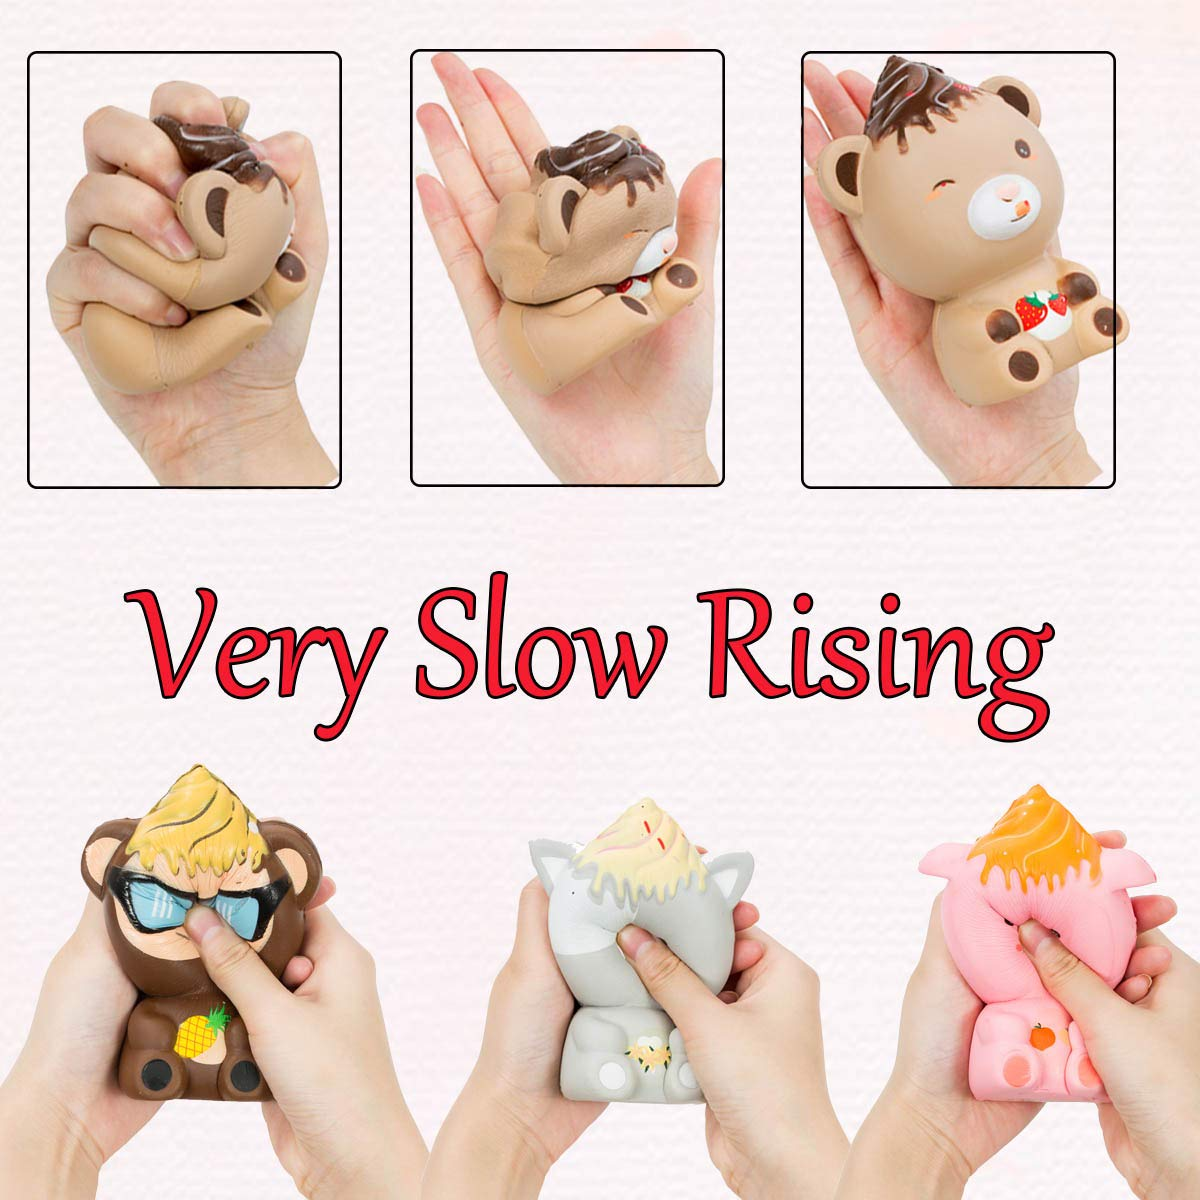 AILIMY Squishies Animal Ice Cream Cup Squishy Cute Cream Scented Soft Slow Rising Great Sensory Toys for Girls,Boys,Kids (8 Random Colors)